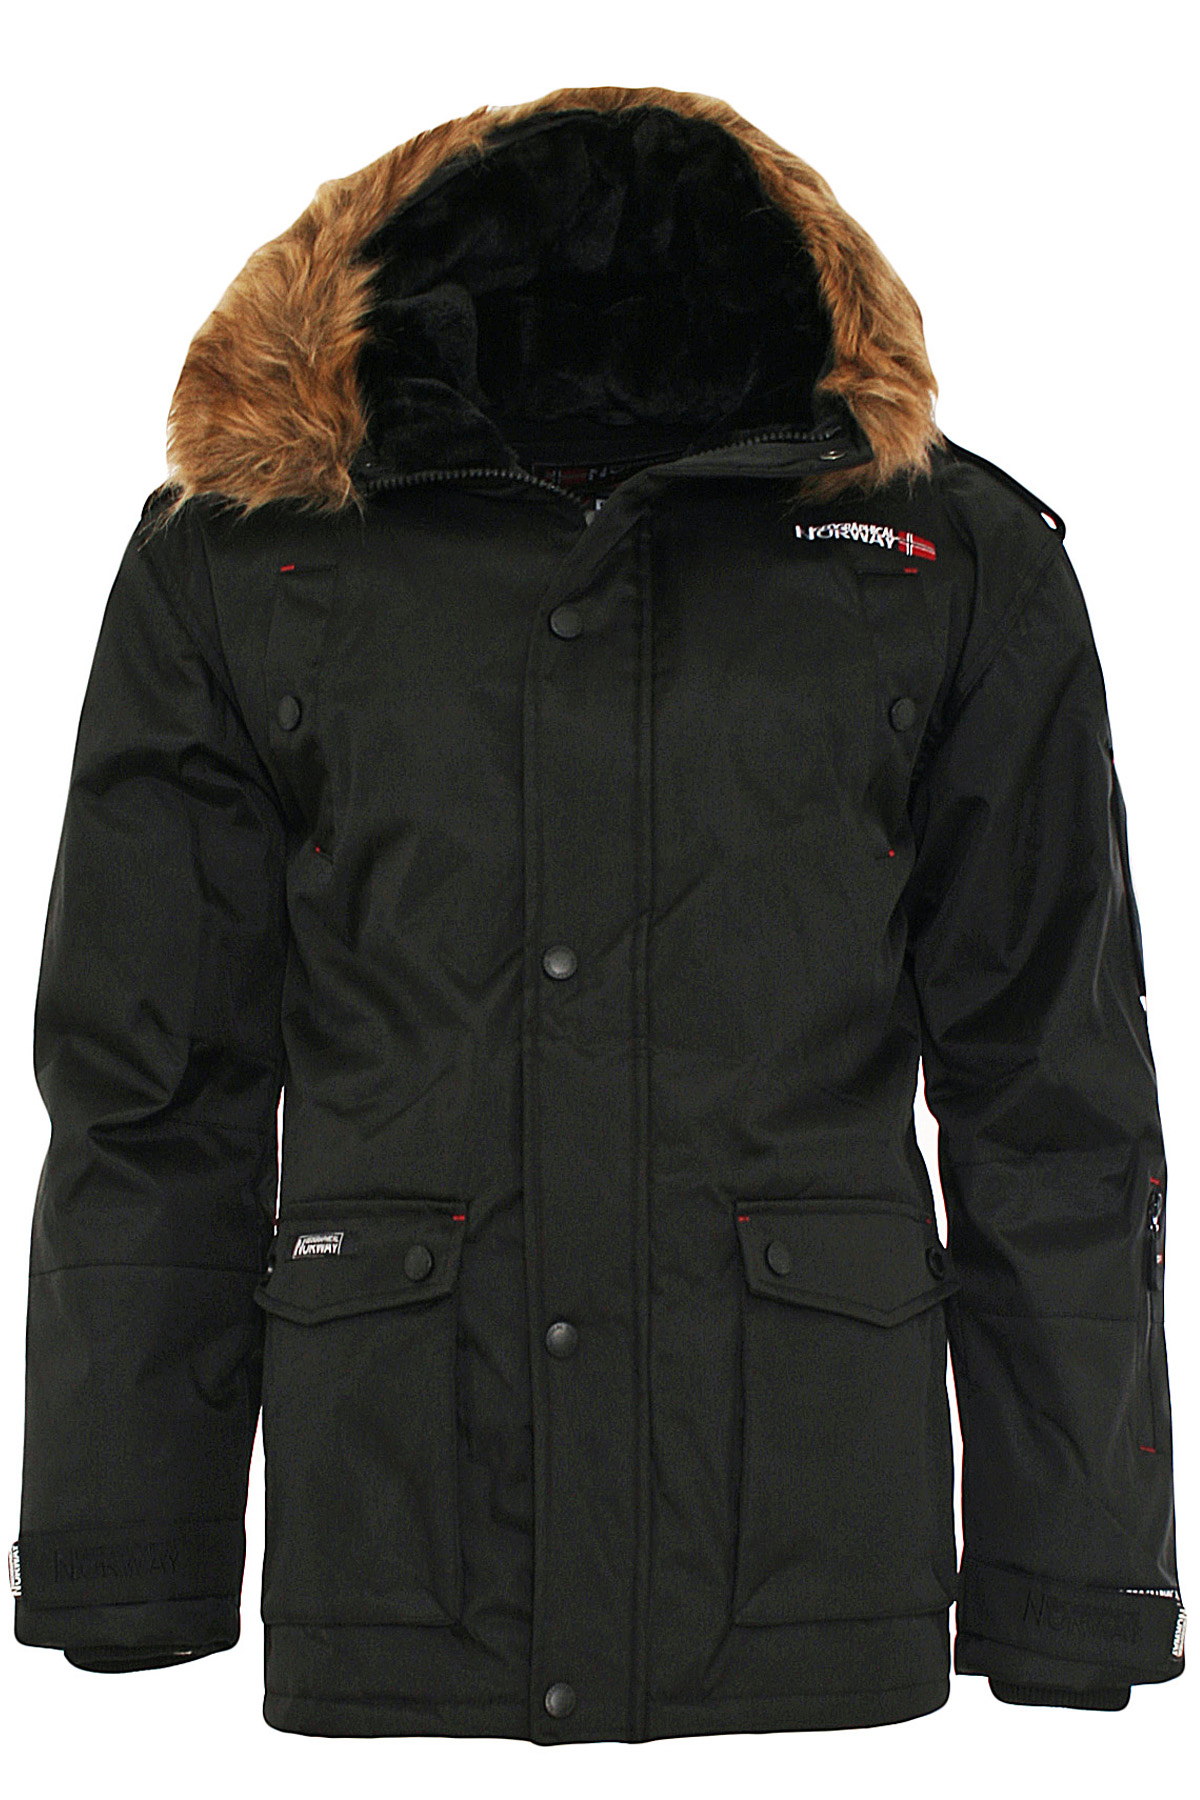 geographical norway herren winterjacke blister longman winter parka jacke ebay. Black Bedroom Furniture Sets. Home Design Ideas